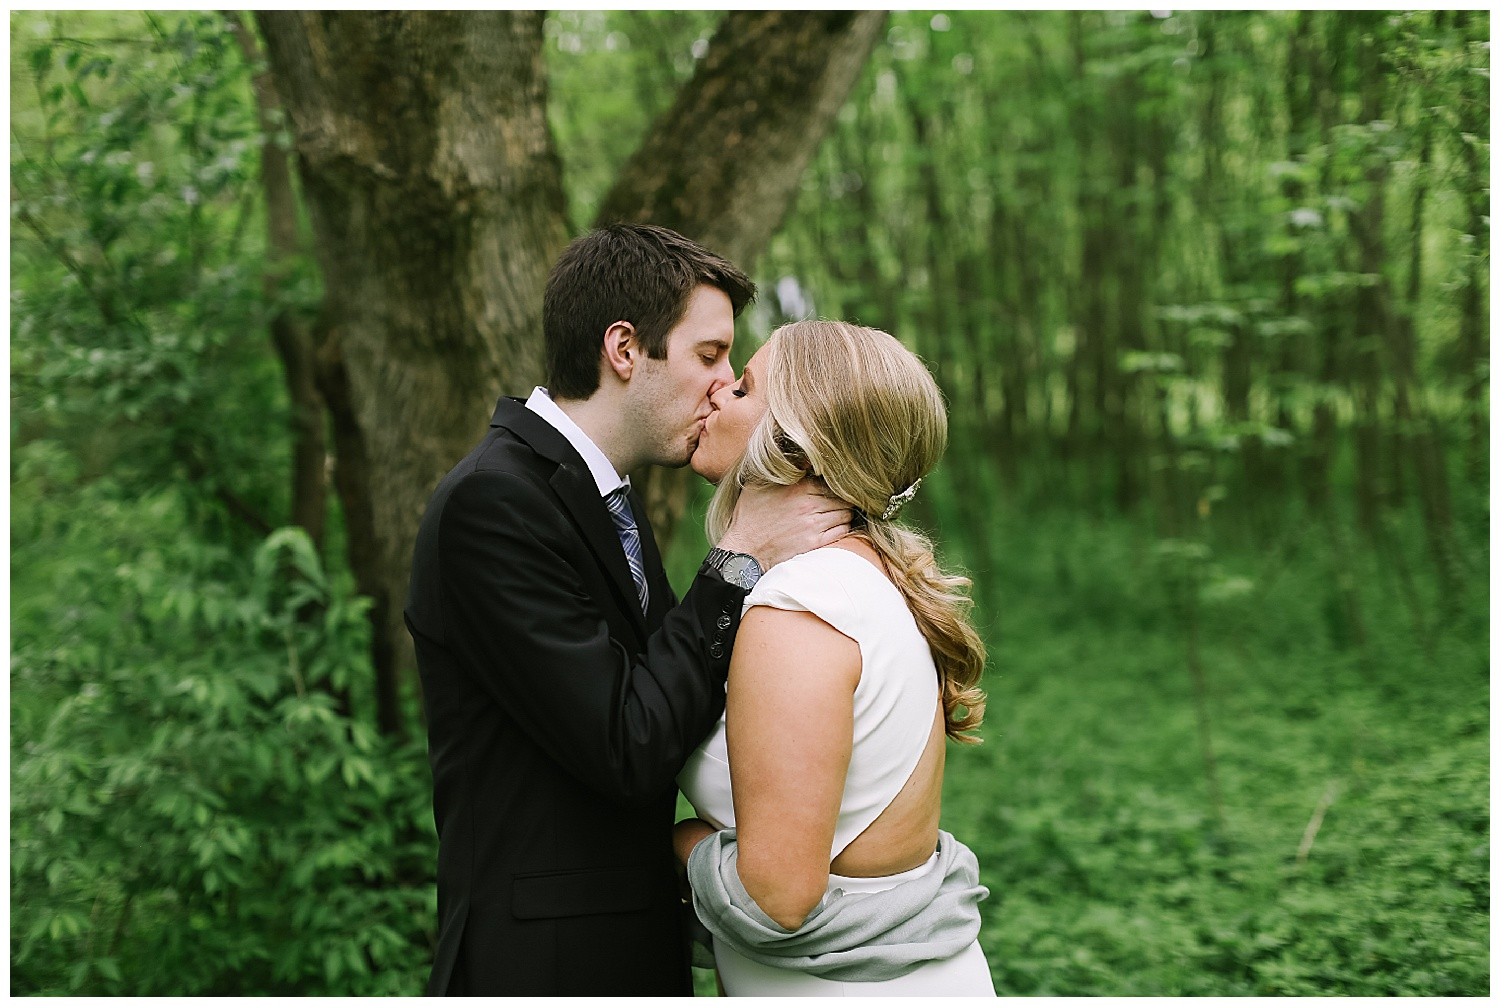 trent.and.kendra.photography.elopement.intimate.wedding-43.jpg